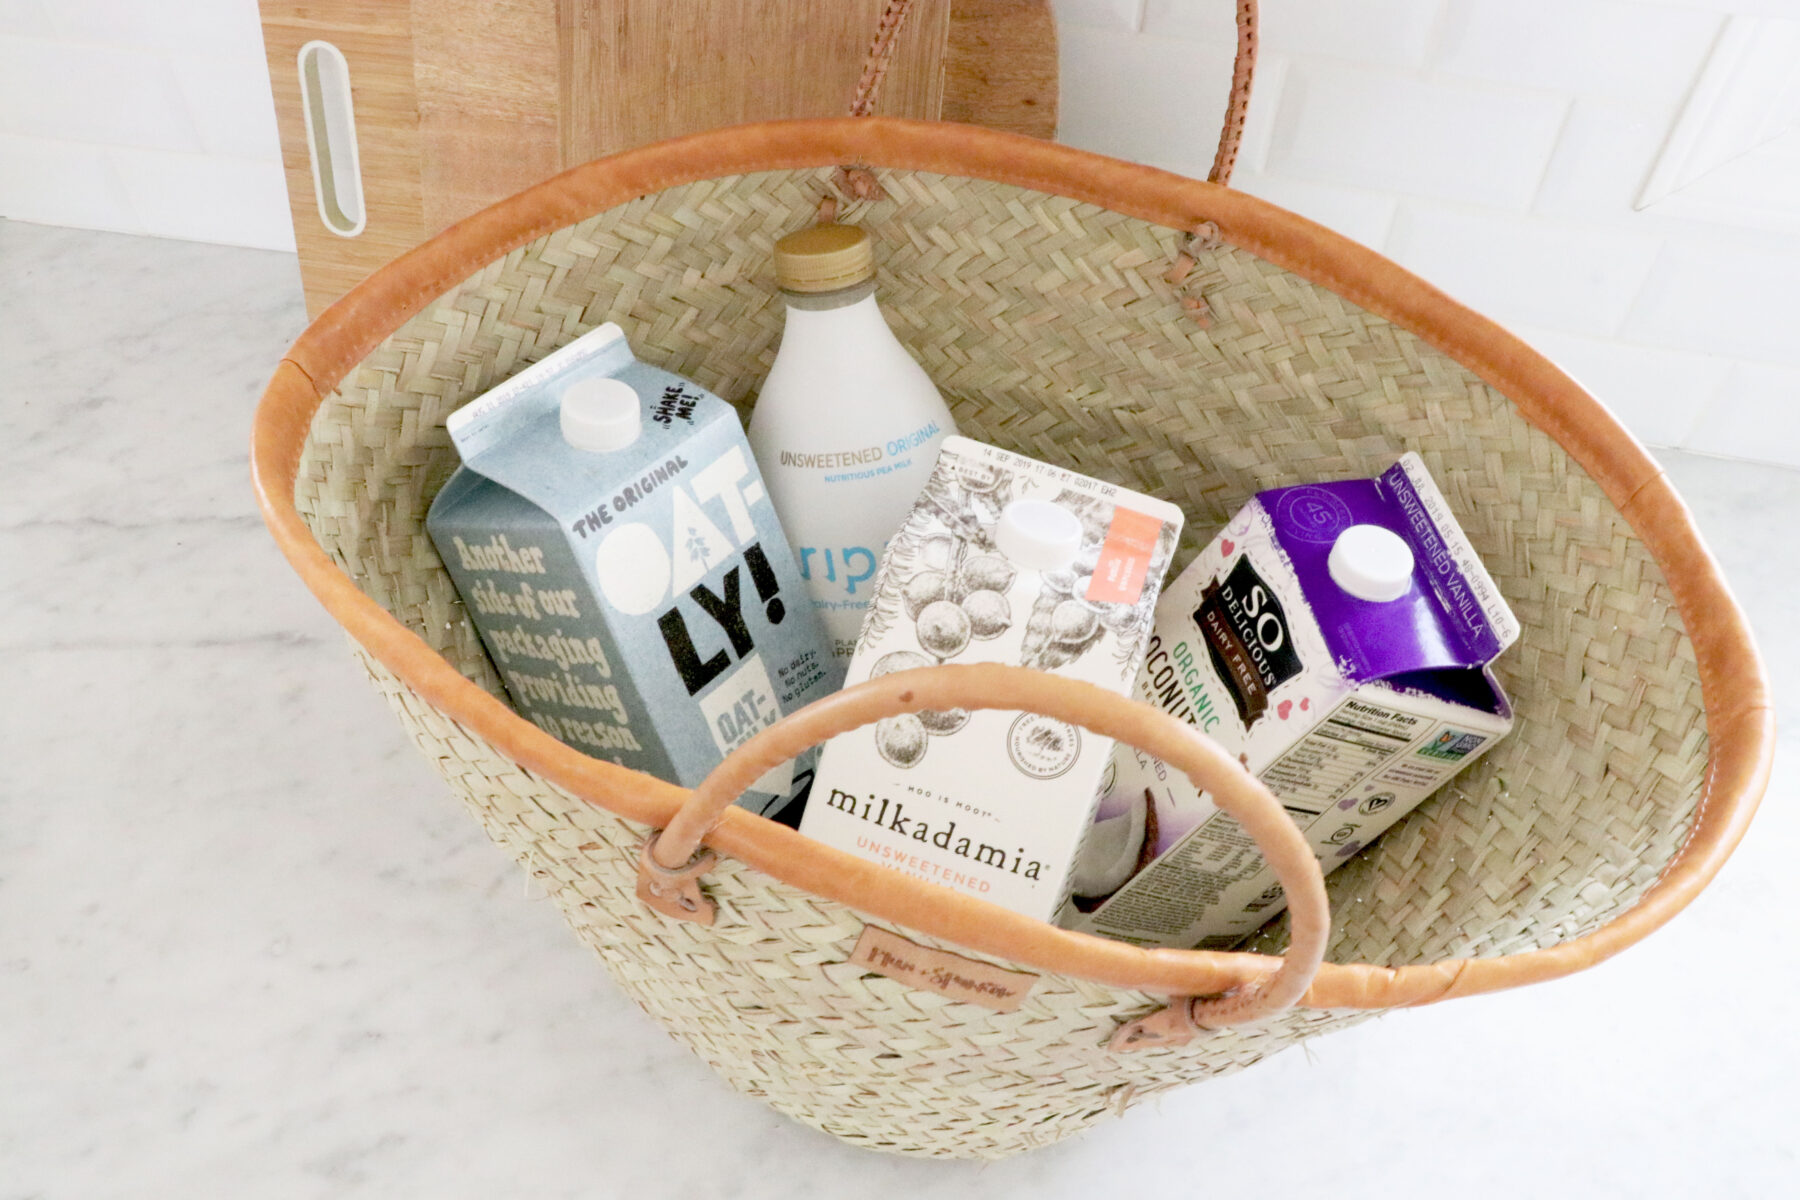 Large basket filled with different non-dairy milks.